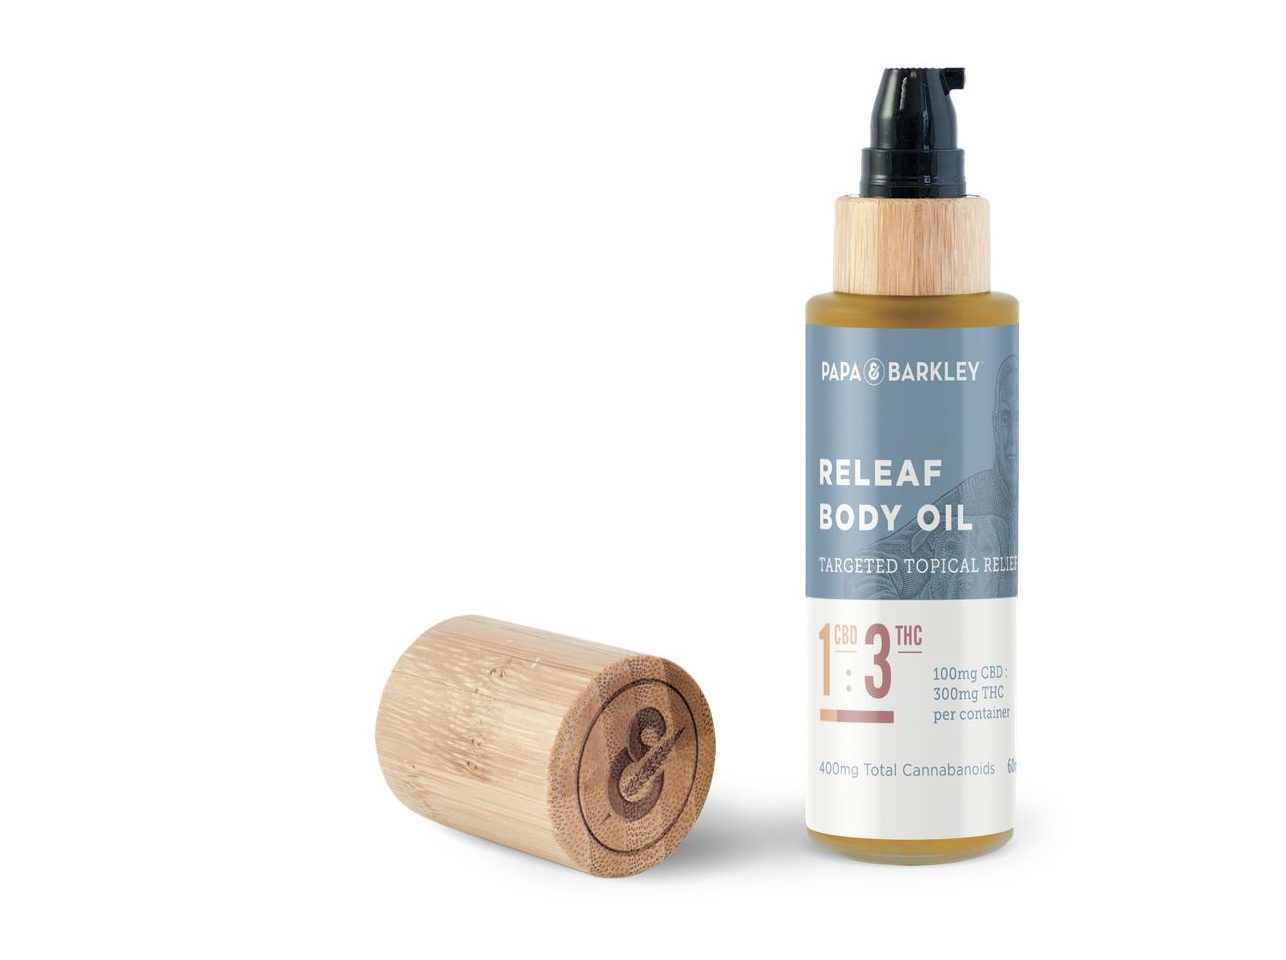 Papas & Barkley Releaf Body Oil